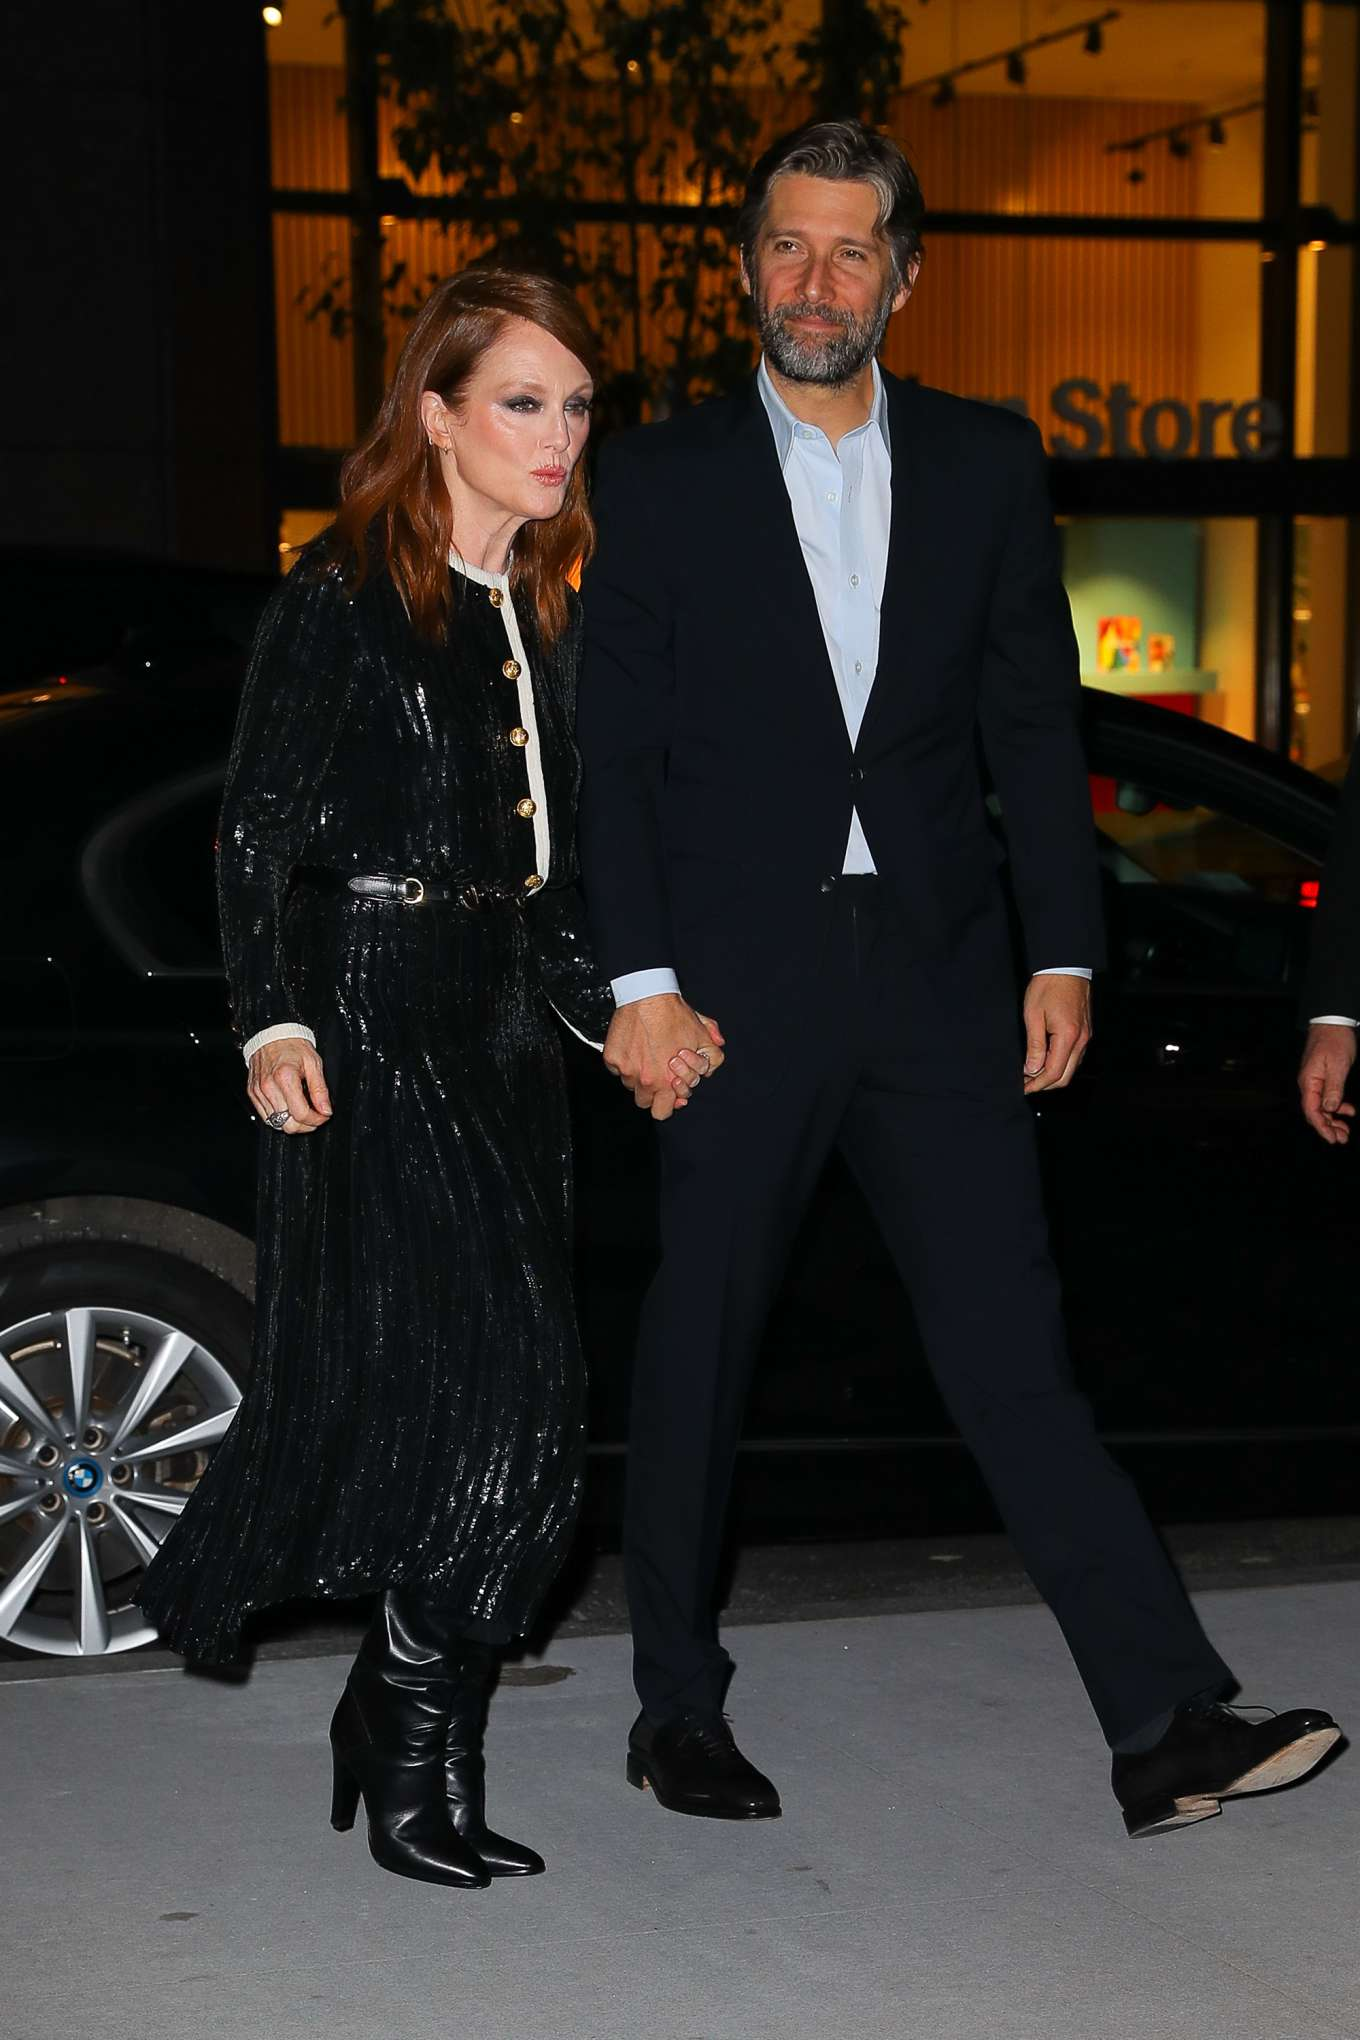 Julianne Moore and husband Bart Freundlich - Arriving at the WSJ Innovator Awards in NYC